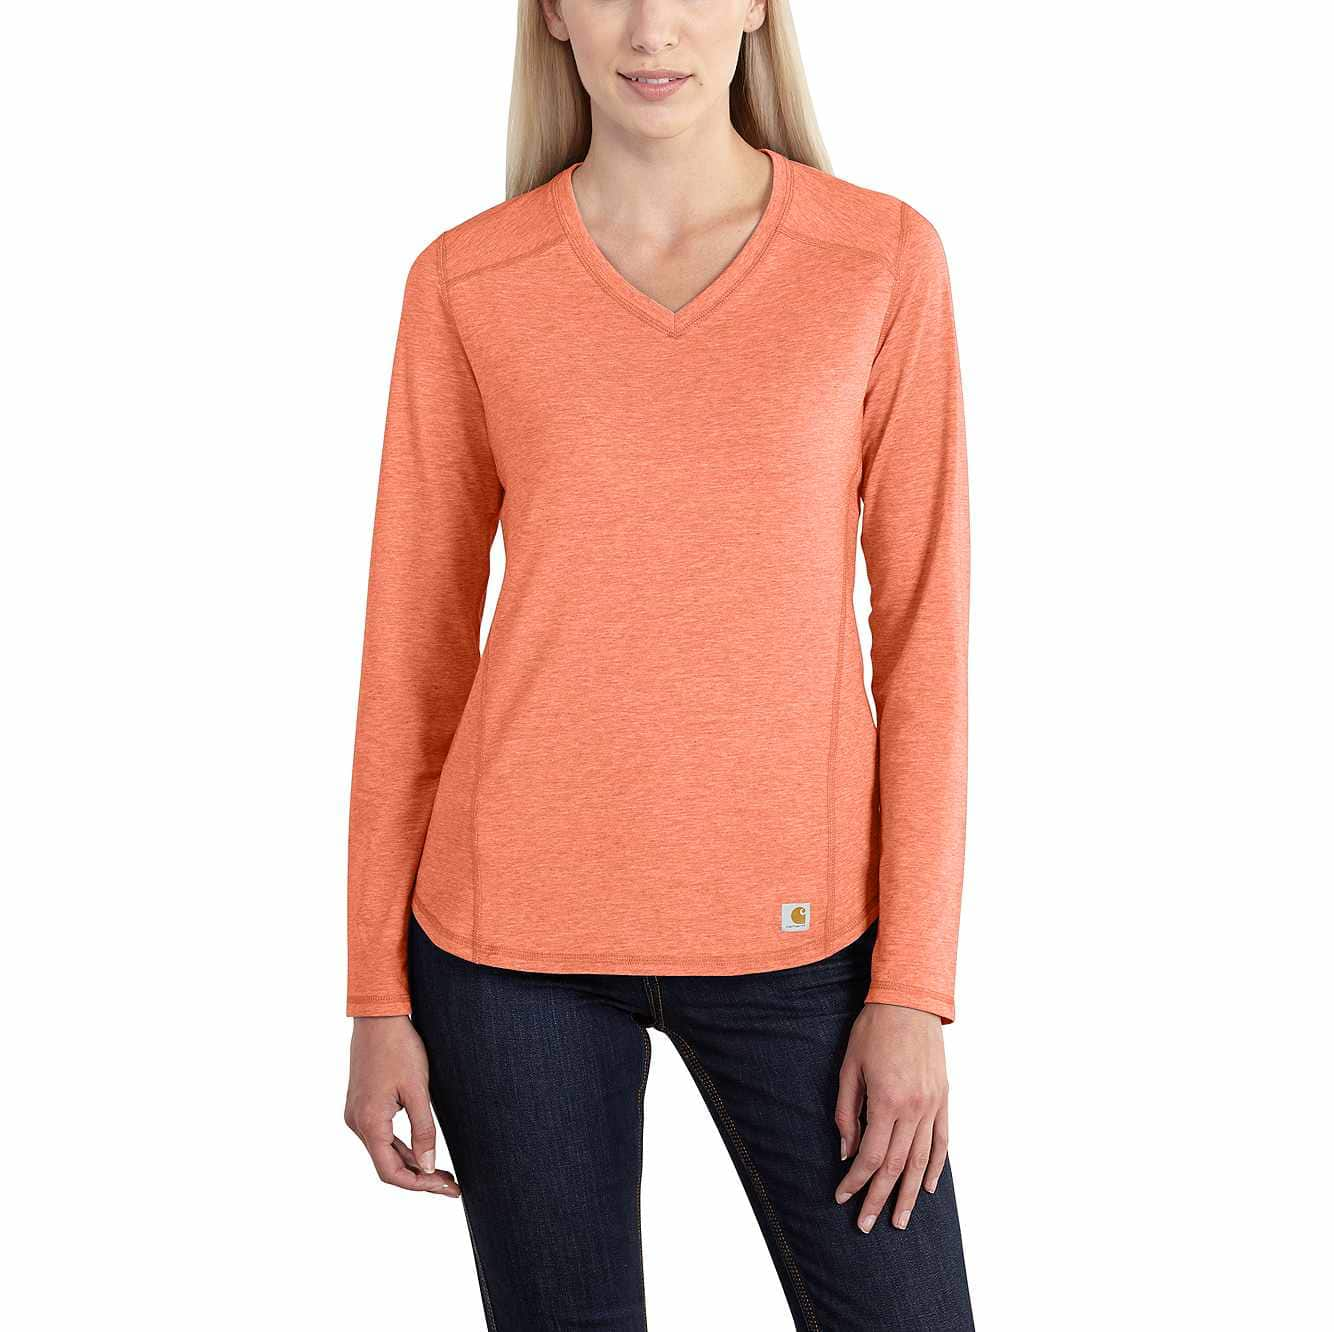 Picture of Carhartt Force® Performance Long Sleeve V-Neck T-Shirt in Burnt Coral Heather